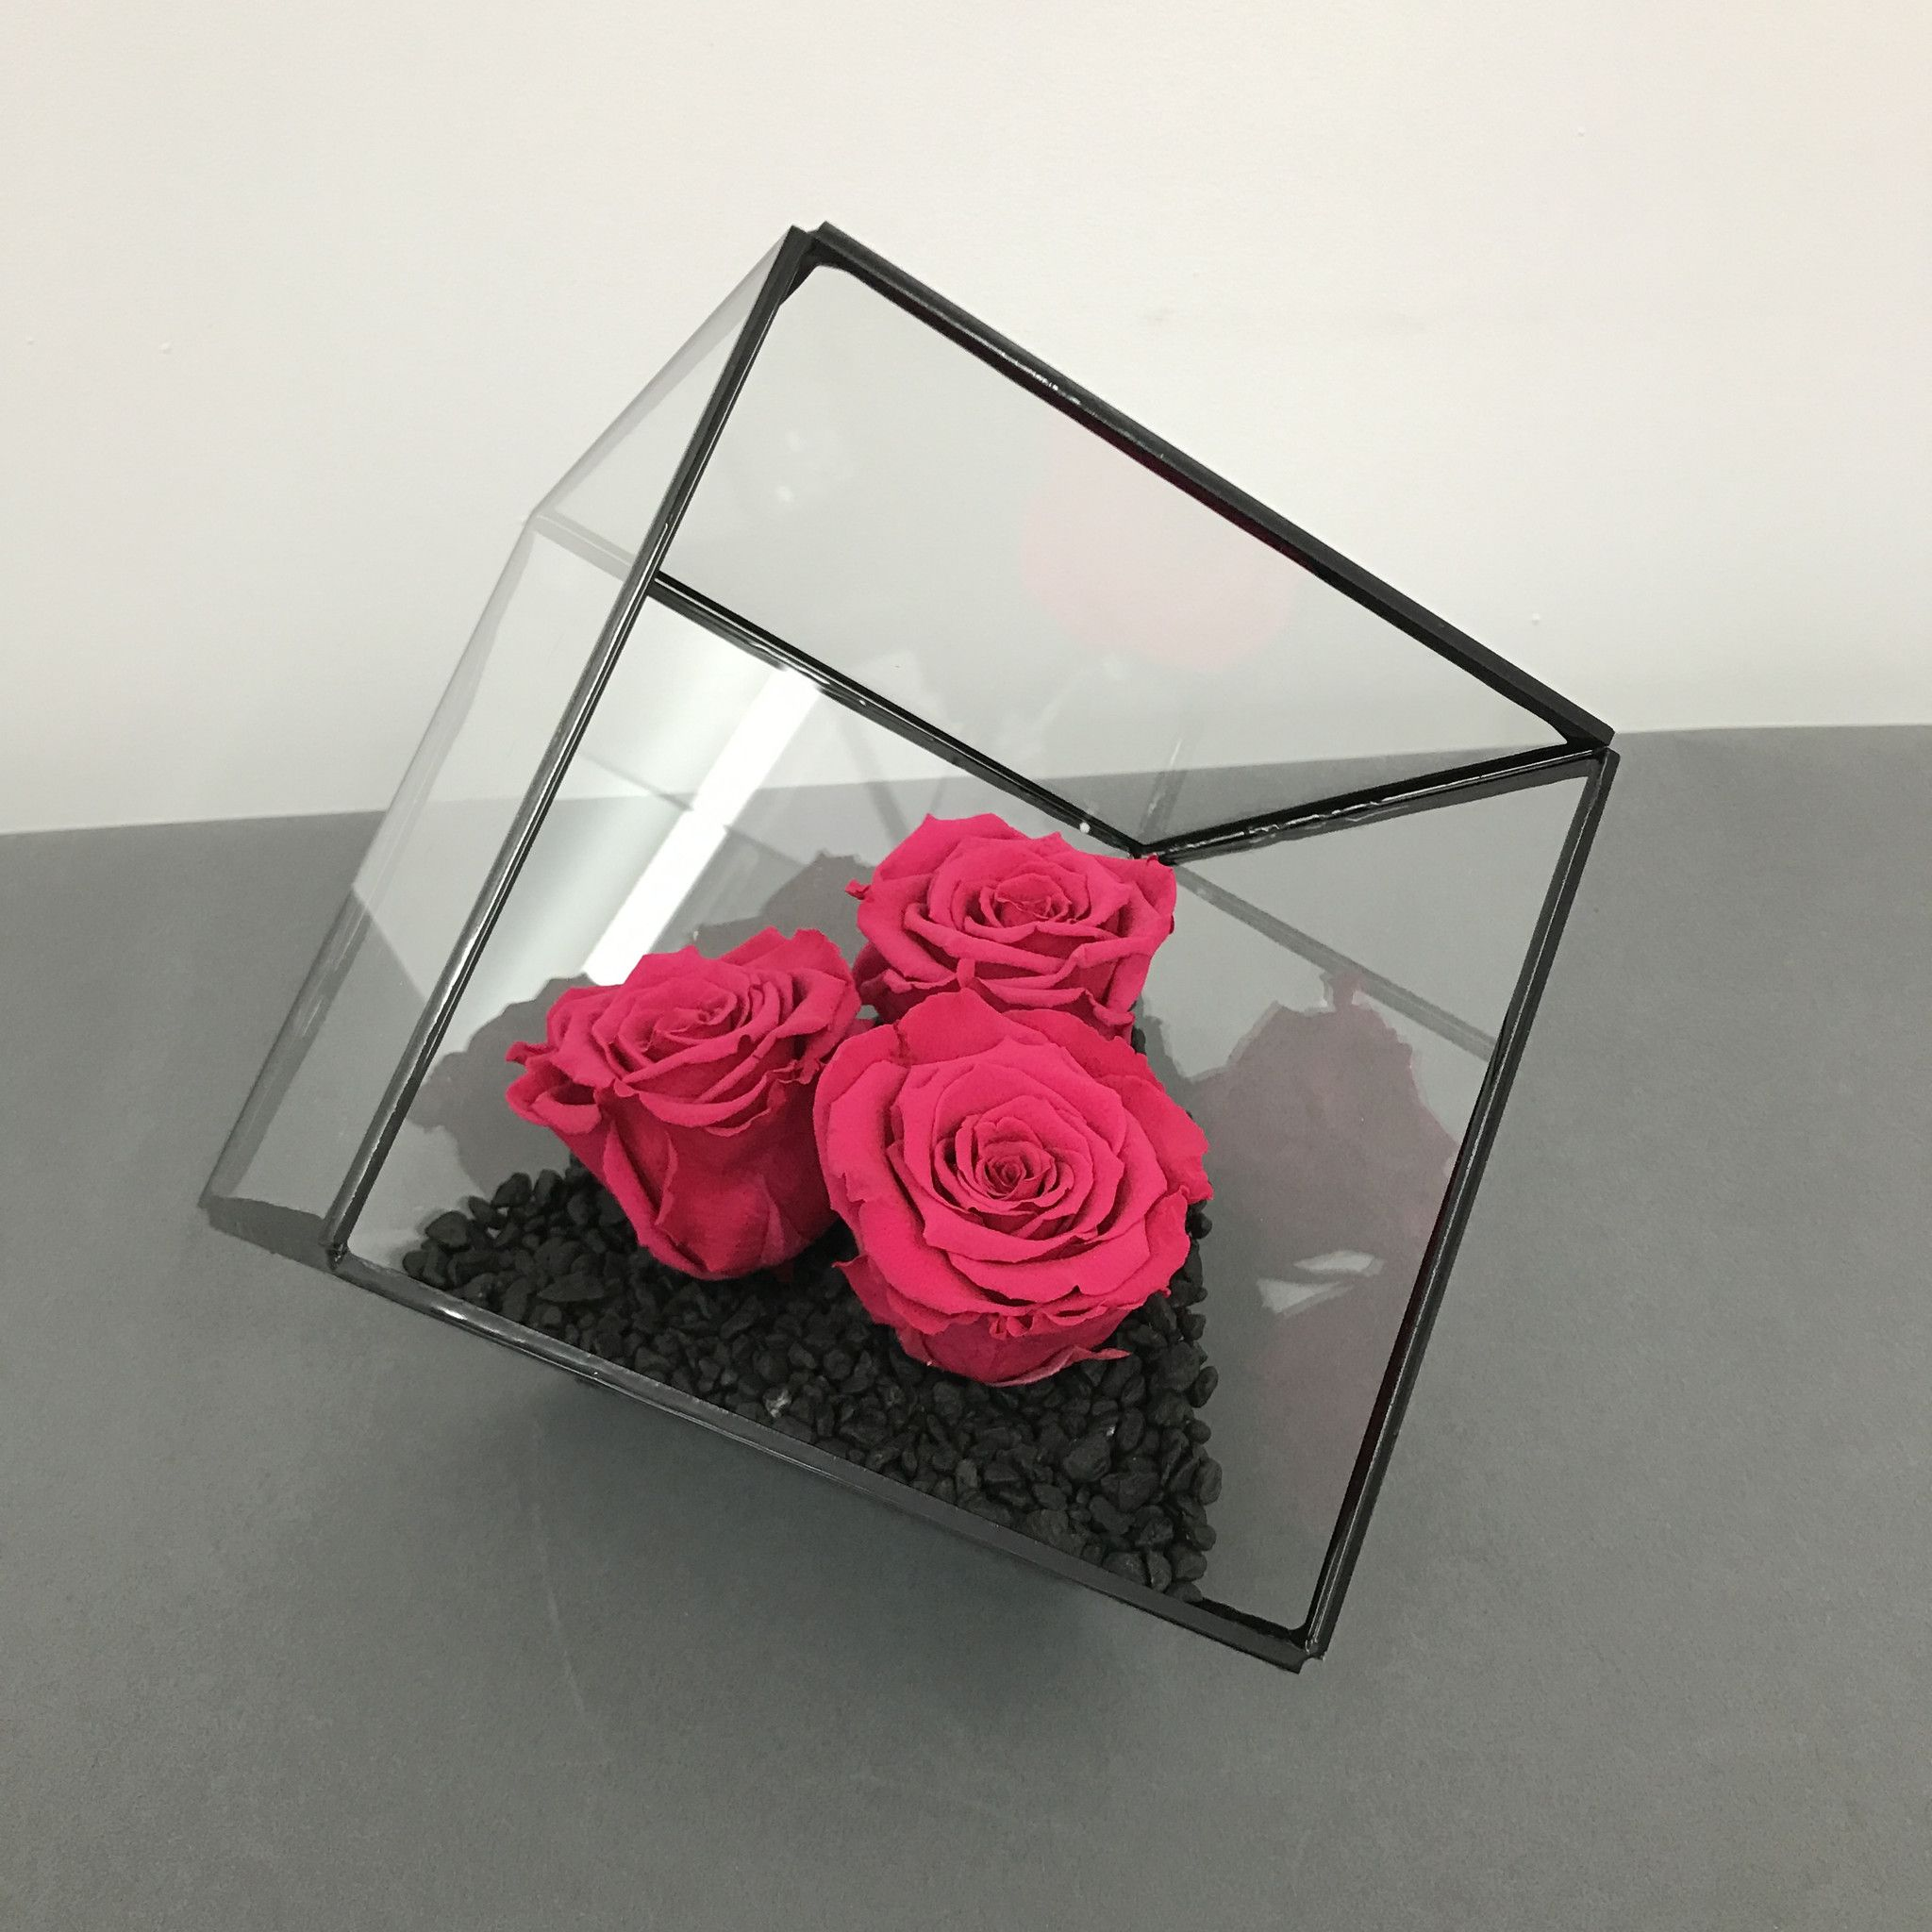 Terrarium Mini Rose Garden is part of Mini Rose garden - Three long lasting, preserved roses of your chosen color inside a stunning, 6 5 inch, metal frame terrarium  These real roses have been carefully conditioned to replace water with glycerin, which allows them to look beautiful for months  They don't like water or direct sunlight    Each arrangement is custom designed based on your rose color and terrarium frame finish preferences